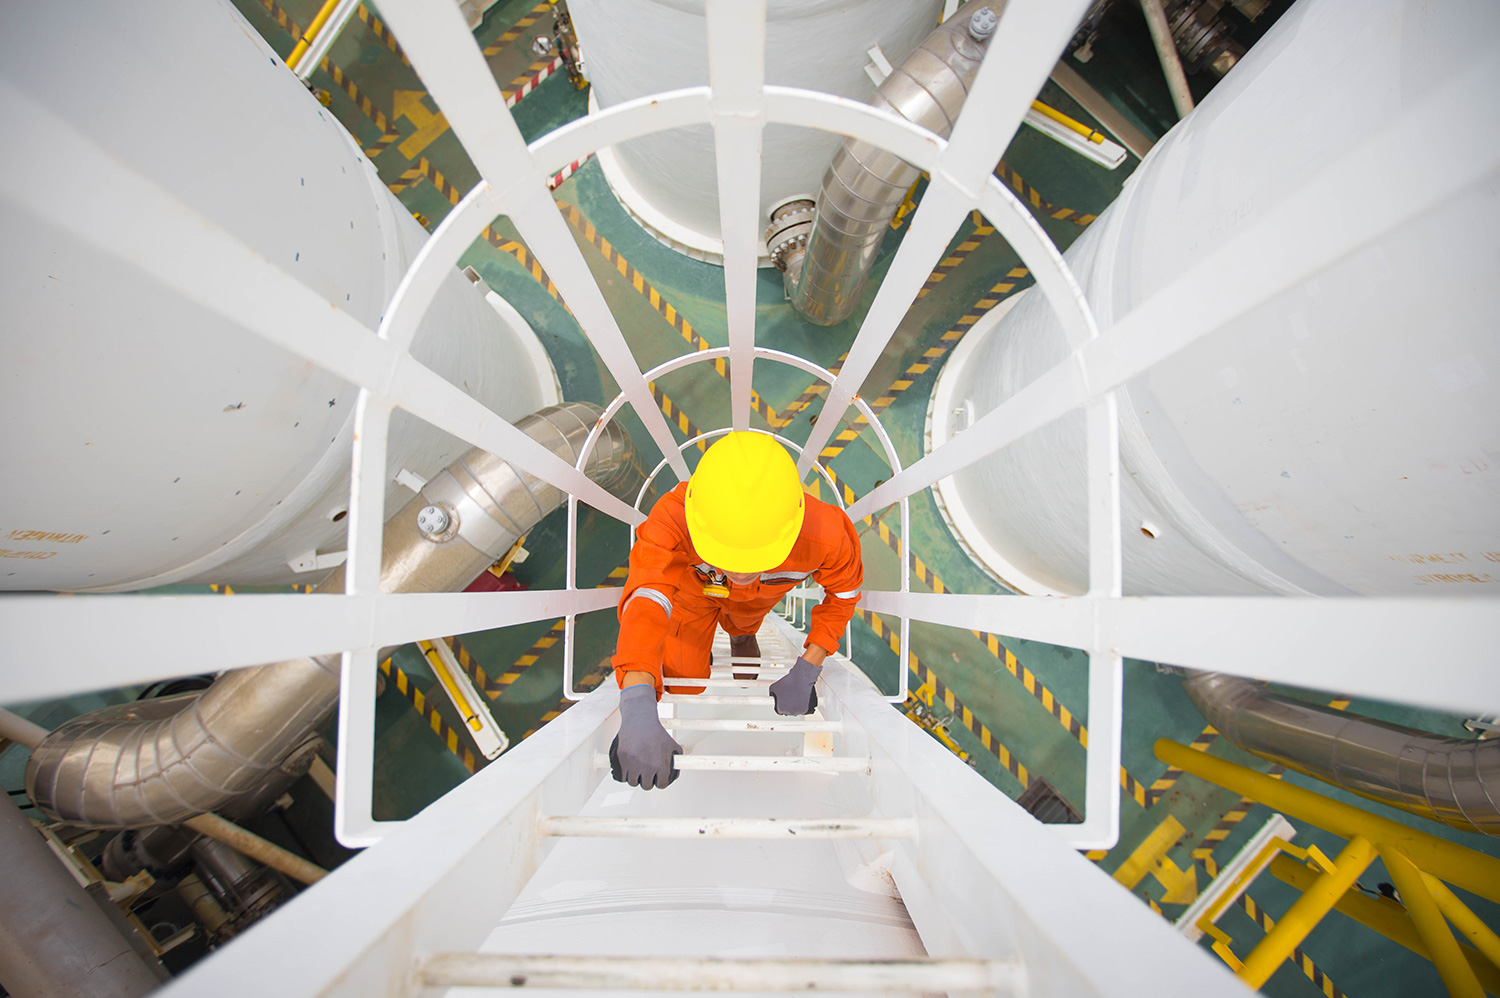 Field Service Engineering Jobs looking forward to new challenges